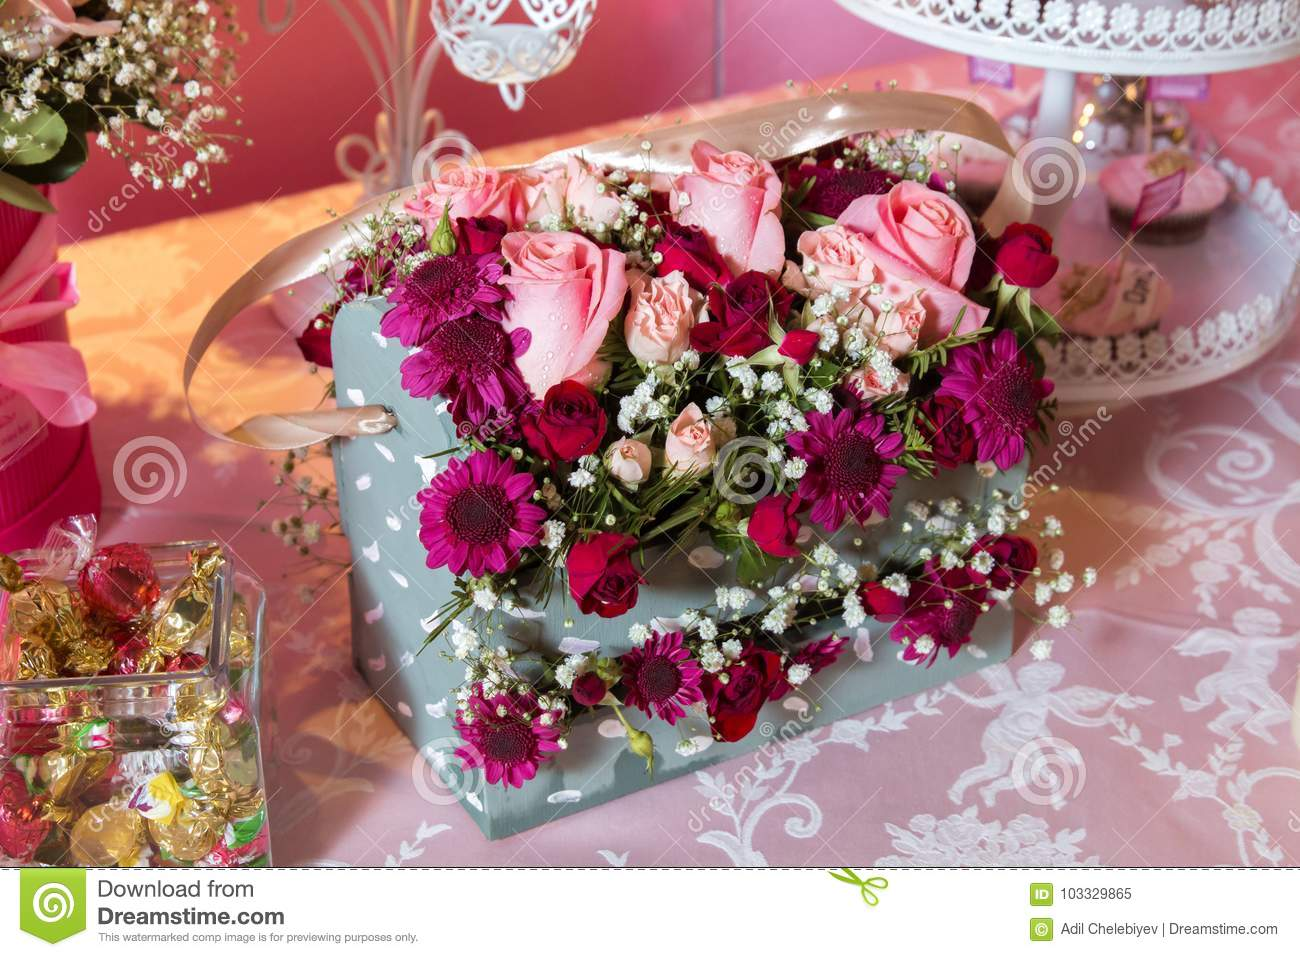 Gift Box With Colorful Roses Four Cornered Birthday Flower Bouquet Bouquets Of Paper Flowers In A Cardboard Square Boxes Stock Image Image Of Square Floral 103329865